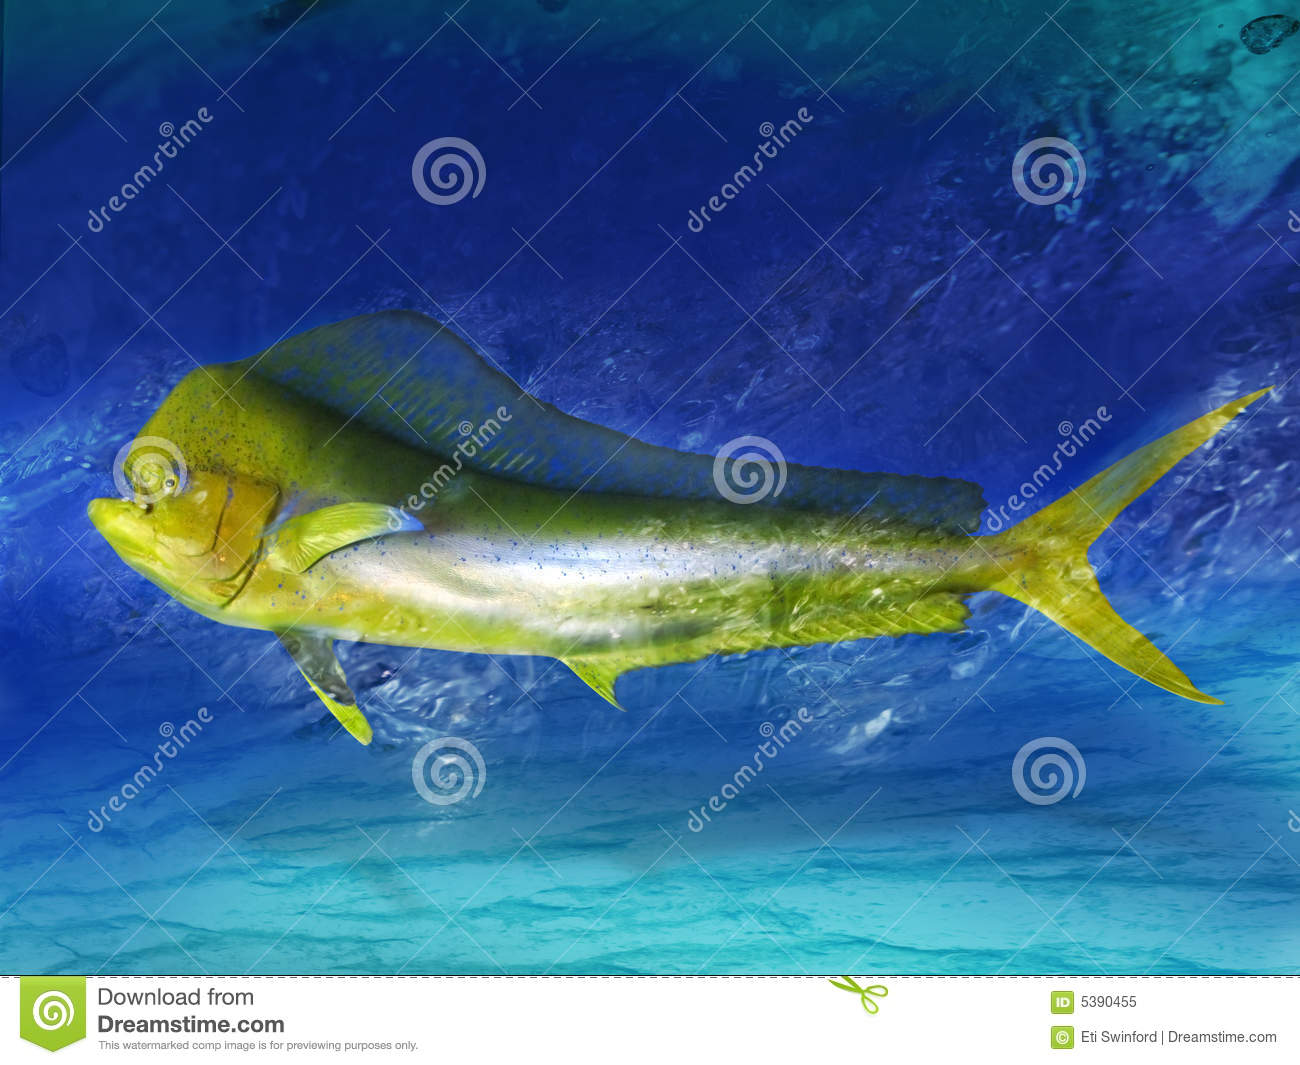 Dolphin fish royalty free stock photo image 5390455 for Is a dolphin a fish